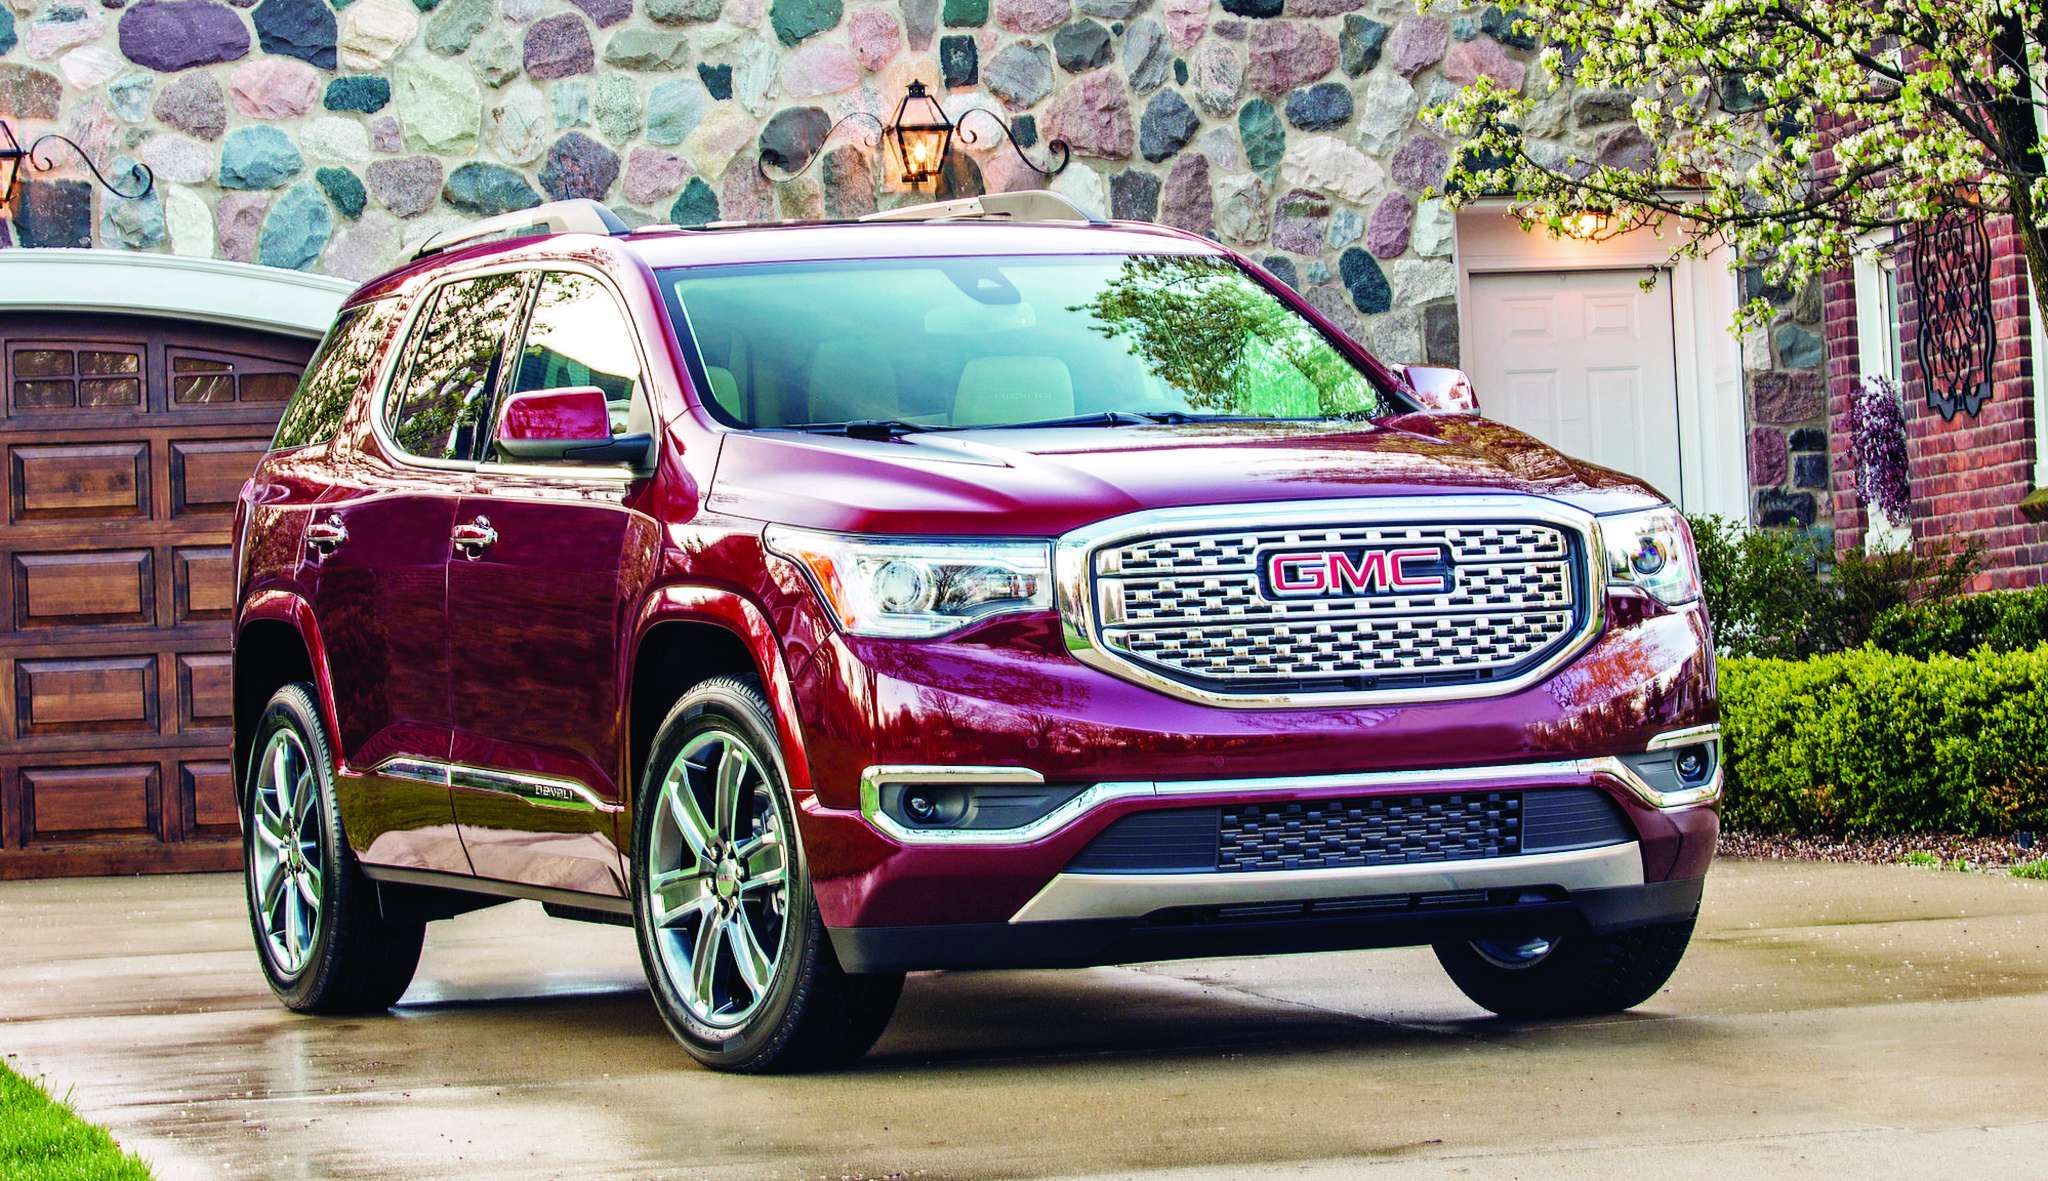 The 2017 GMC Acadia Denali was lightened and redesigned for the new model year. Its 700-pound reduction improved its fuel economy.